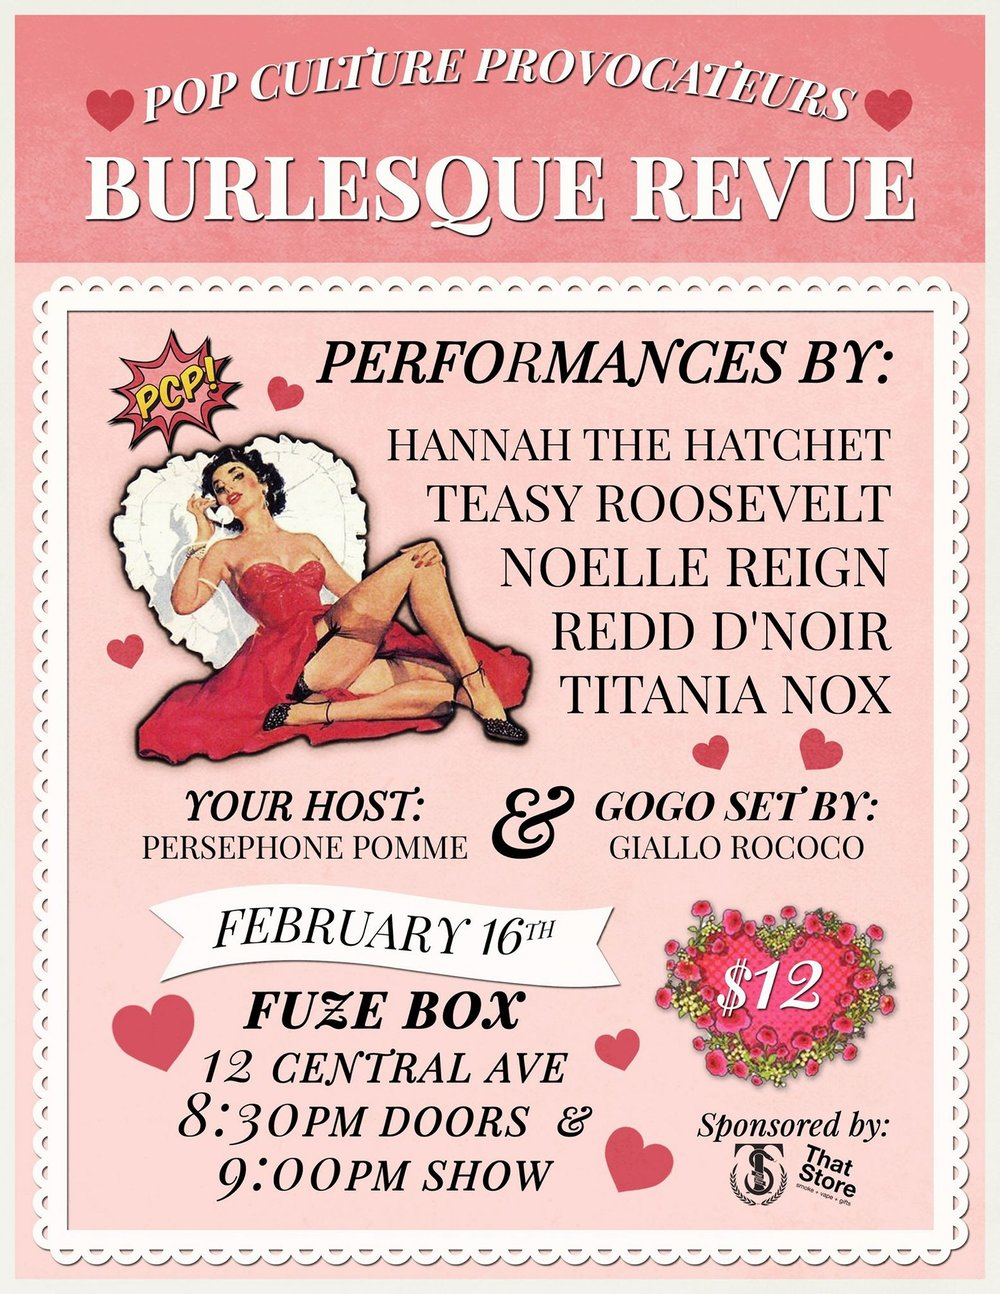 - The lovely ladies of Pop Culture Provocateurs present the February edition of their monthly Burlesque Revue! Win a $25 That Store gift card in the raffle! Join Pop Culture Provocateurs on February 16th for the next edition of their monthly burlesque revue! Whether you're looking for a night out with your sweetie or cursing stupid cupid, we are here to cure your mid-winter blues with the most entertaining ecdysiasts in town!Featuring performances by...HANNAH THE HATCHET (Whiskey Tango Sideshow)NOELLE REIGNTEASY ROOSEVELTTITANIA NOXREDD D'NOIR Your host...PERSEPHONE POMMEStage kitten and gogo extraordinaire...GIALLO ROCOCOFUZE BOX12 CENTRAL AVE830PM DOORS // 9PM SHOW$12STICK AROUND AND PARTY FOR THE TWO YEAR ANNIVERSARY OF BODYSHINE!